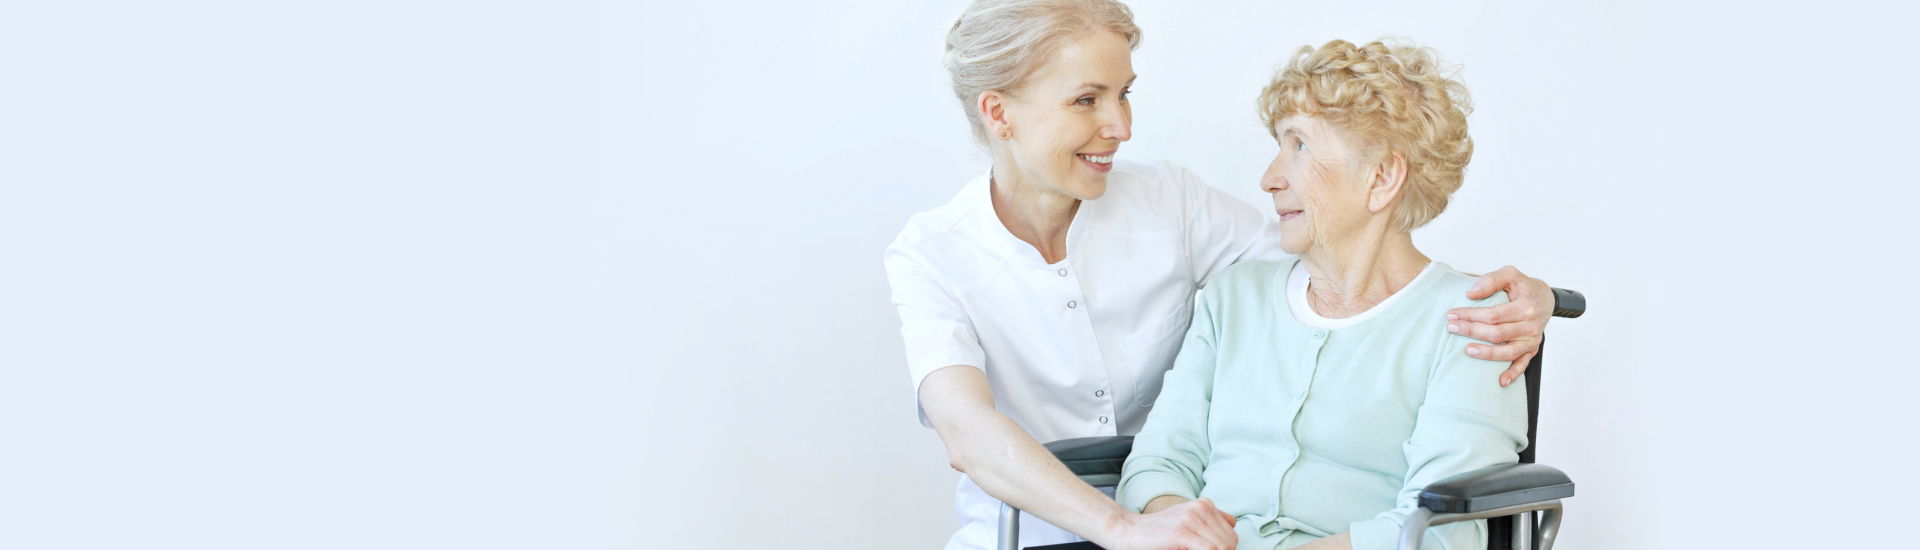 caregiver and elderly woman in a wheelchair smiling